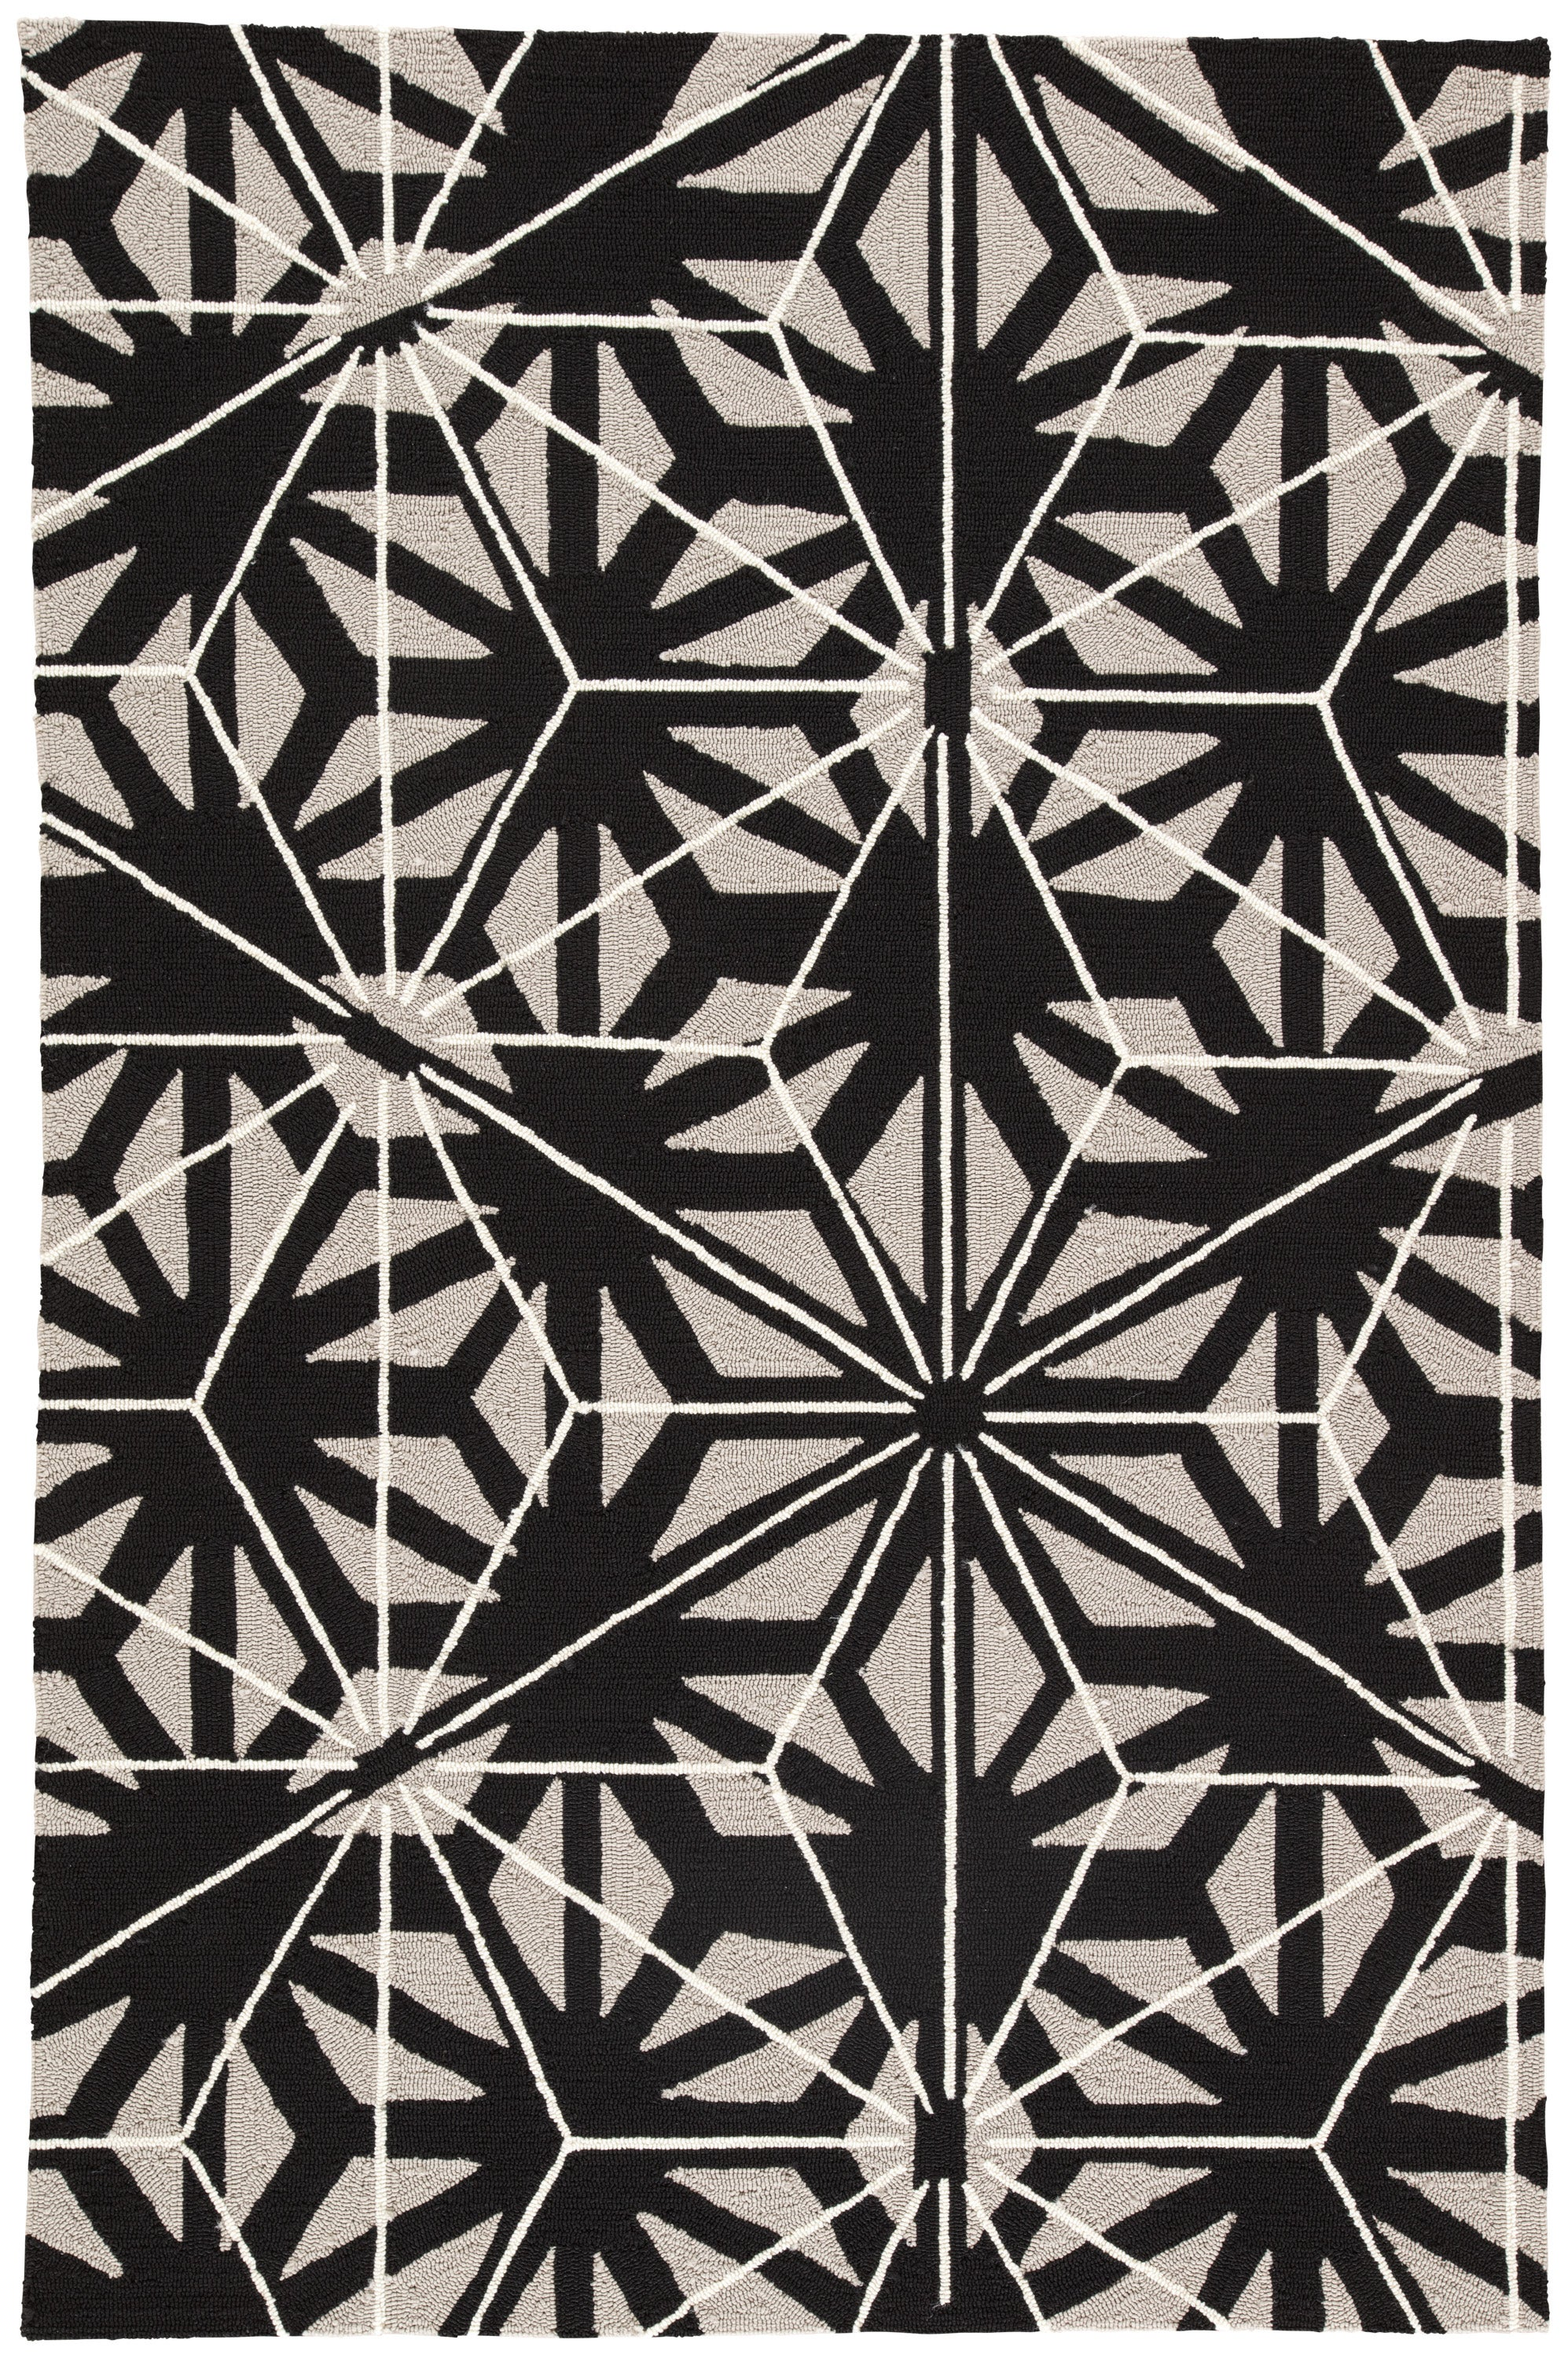 Rectangle Black Geometric Hand Hooked Synthetics Contemporary recommended for Bedroom, Bathroom, Outdoor, Dining Room, Office, Hallway, Living Room